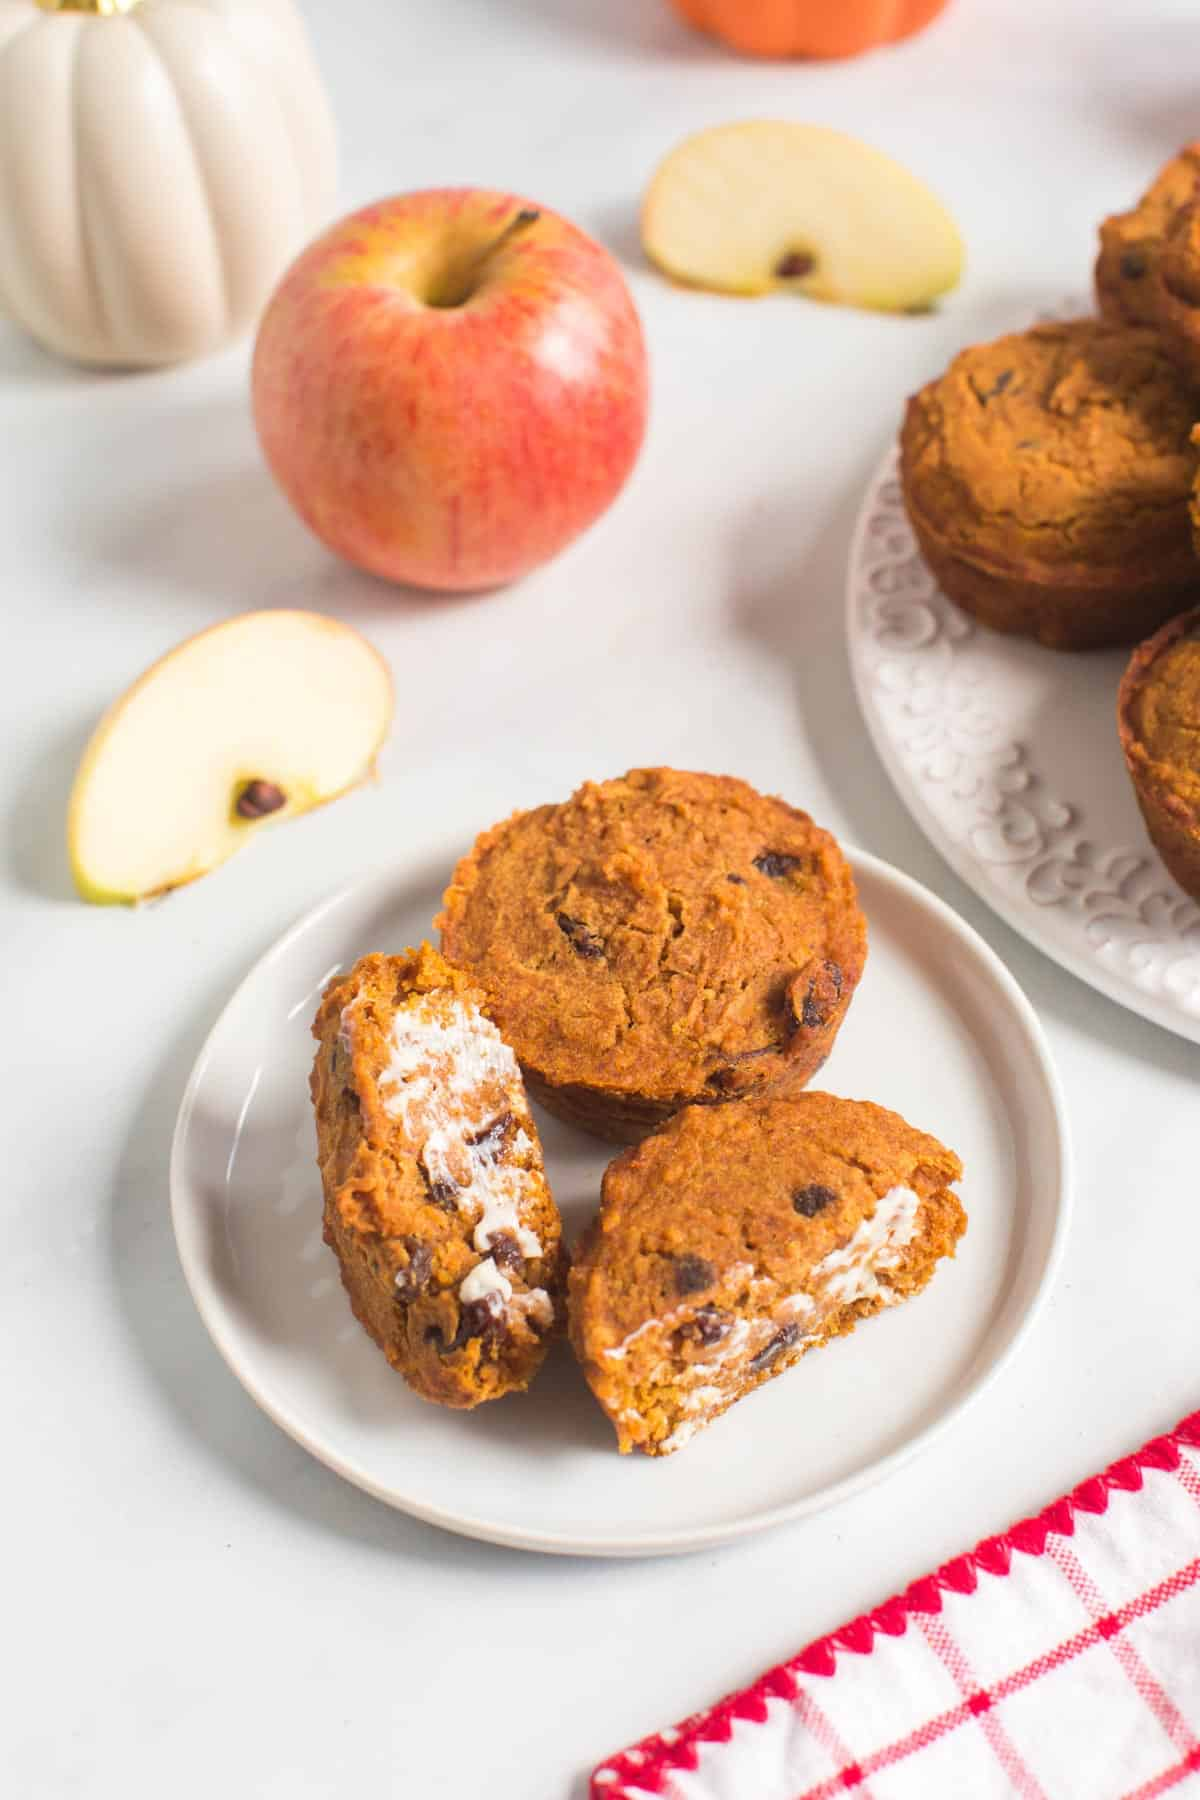 two pumpkin apple muffins with raisins on a plate with one cut in half and spread with butter next to a platter with more muffins, an apple, and some apple slices